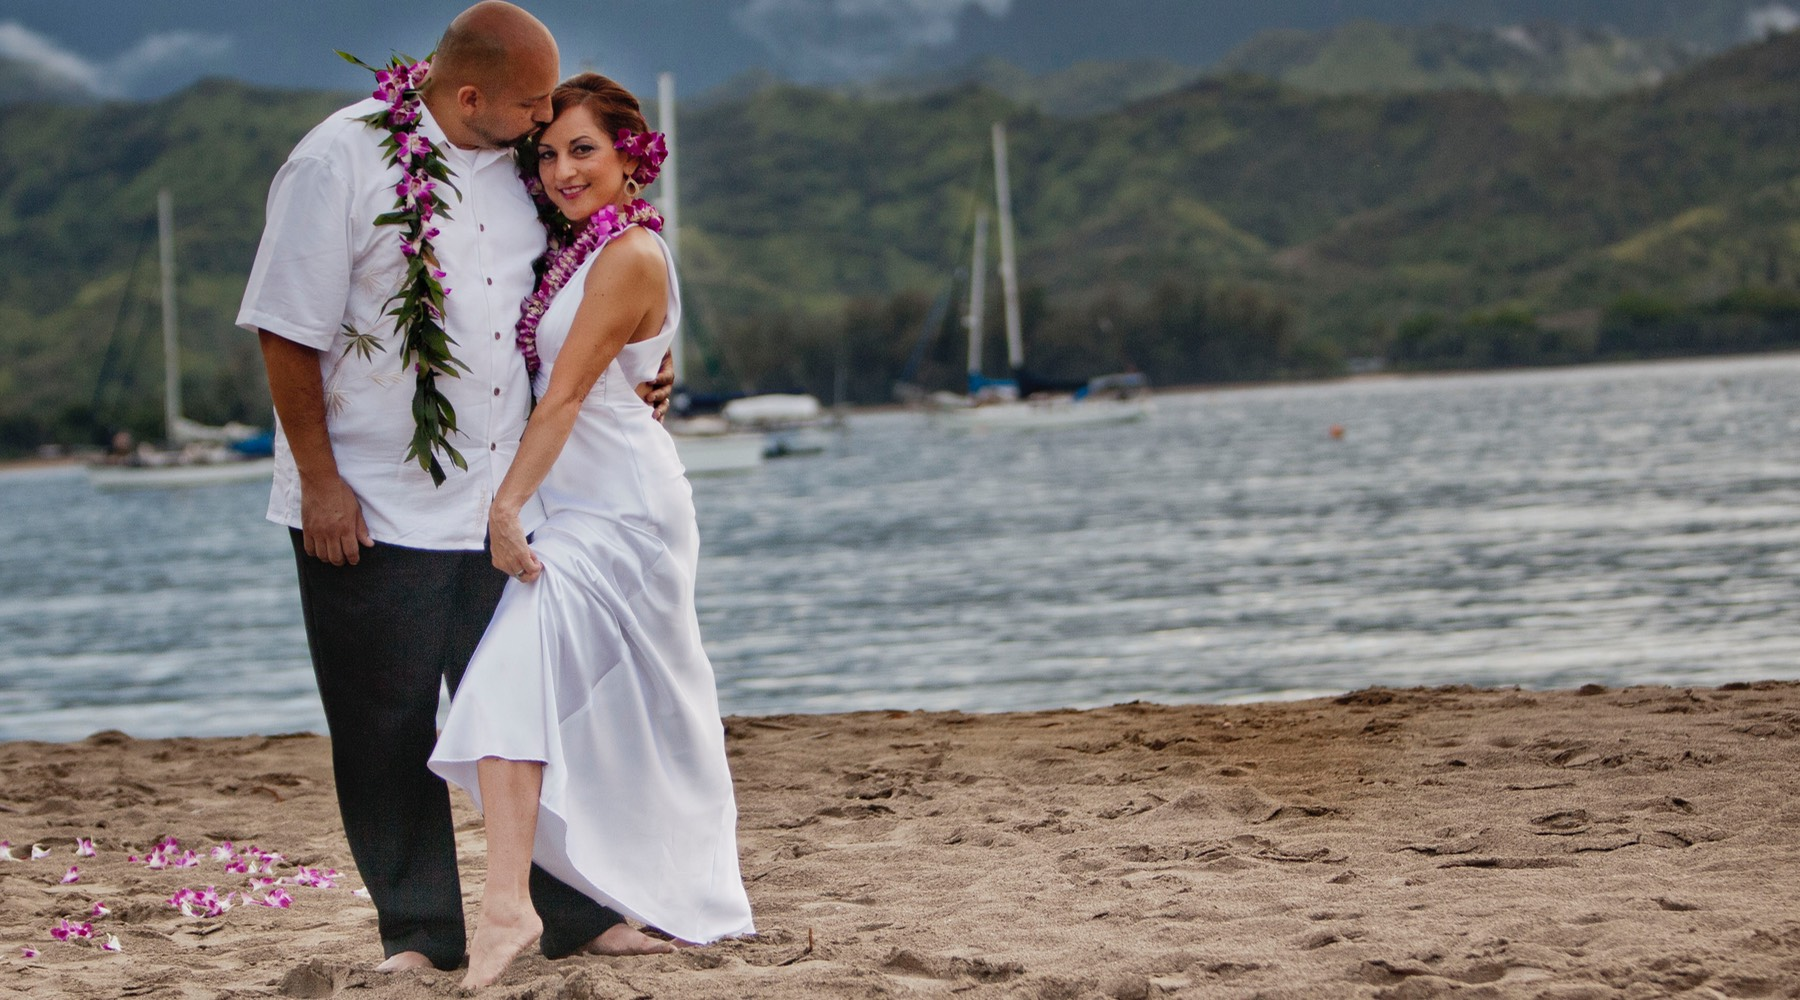 Videographer and photographer weddings and corporate for Affordable wedding videographer